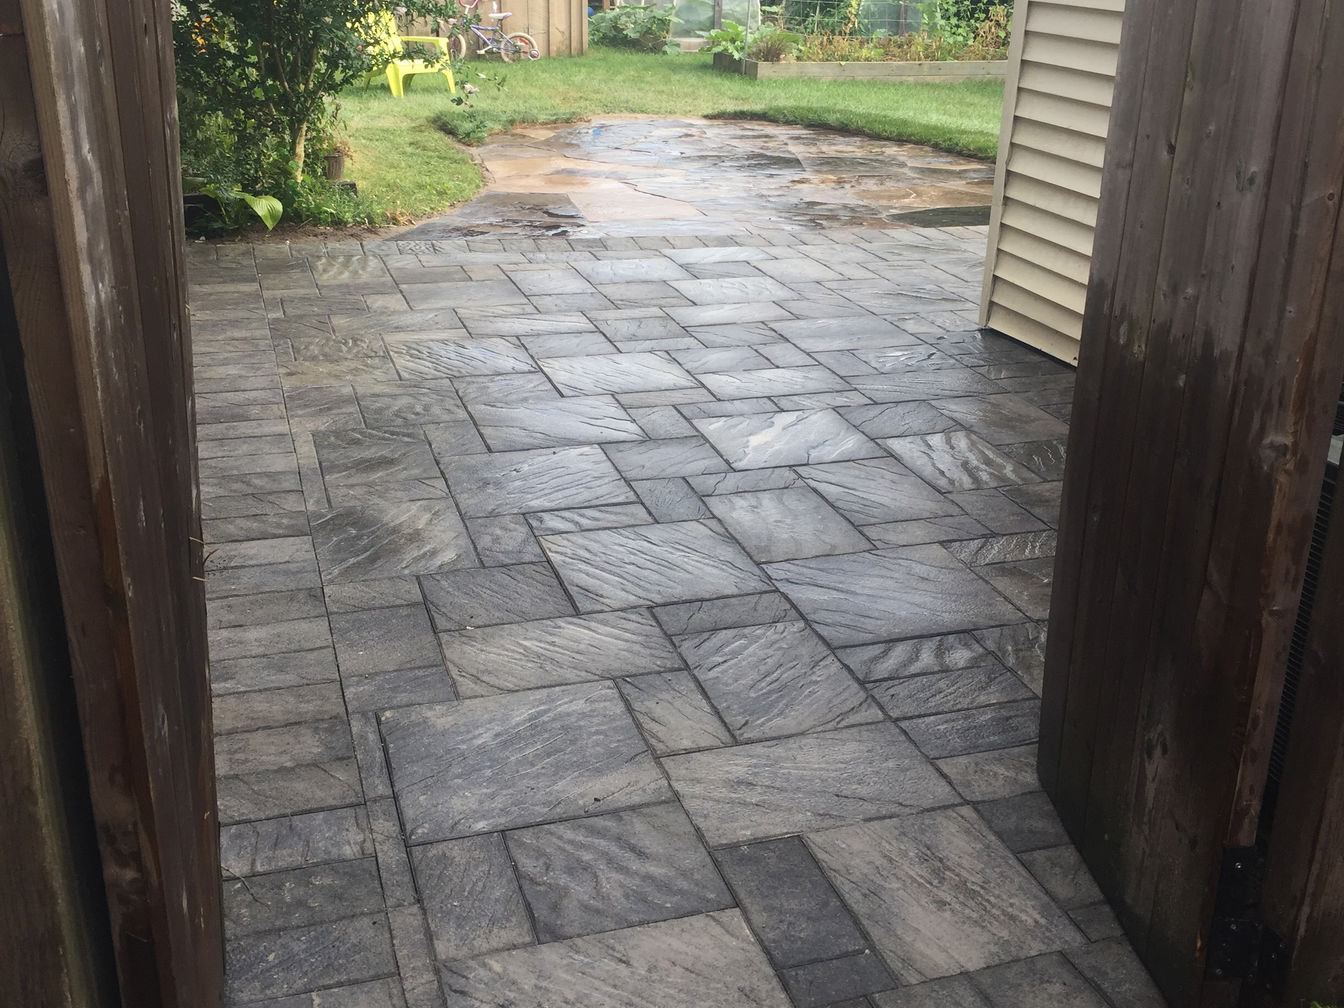 Natural Flagstone Patio and Interlocking Paver Patio w. Walkway, by O'Connor Stone & Landscape, a London Ontario based Landscape and Hardscape Contractor